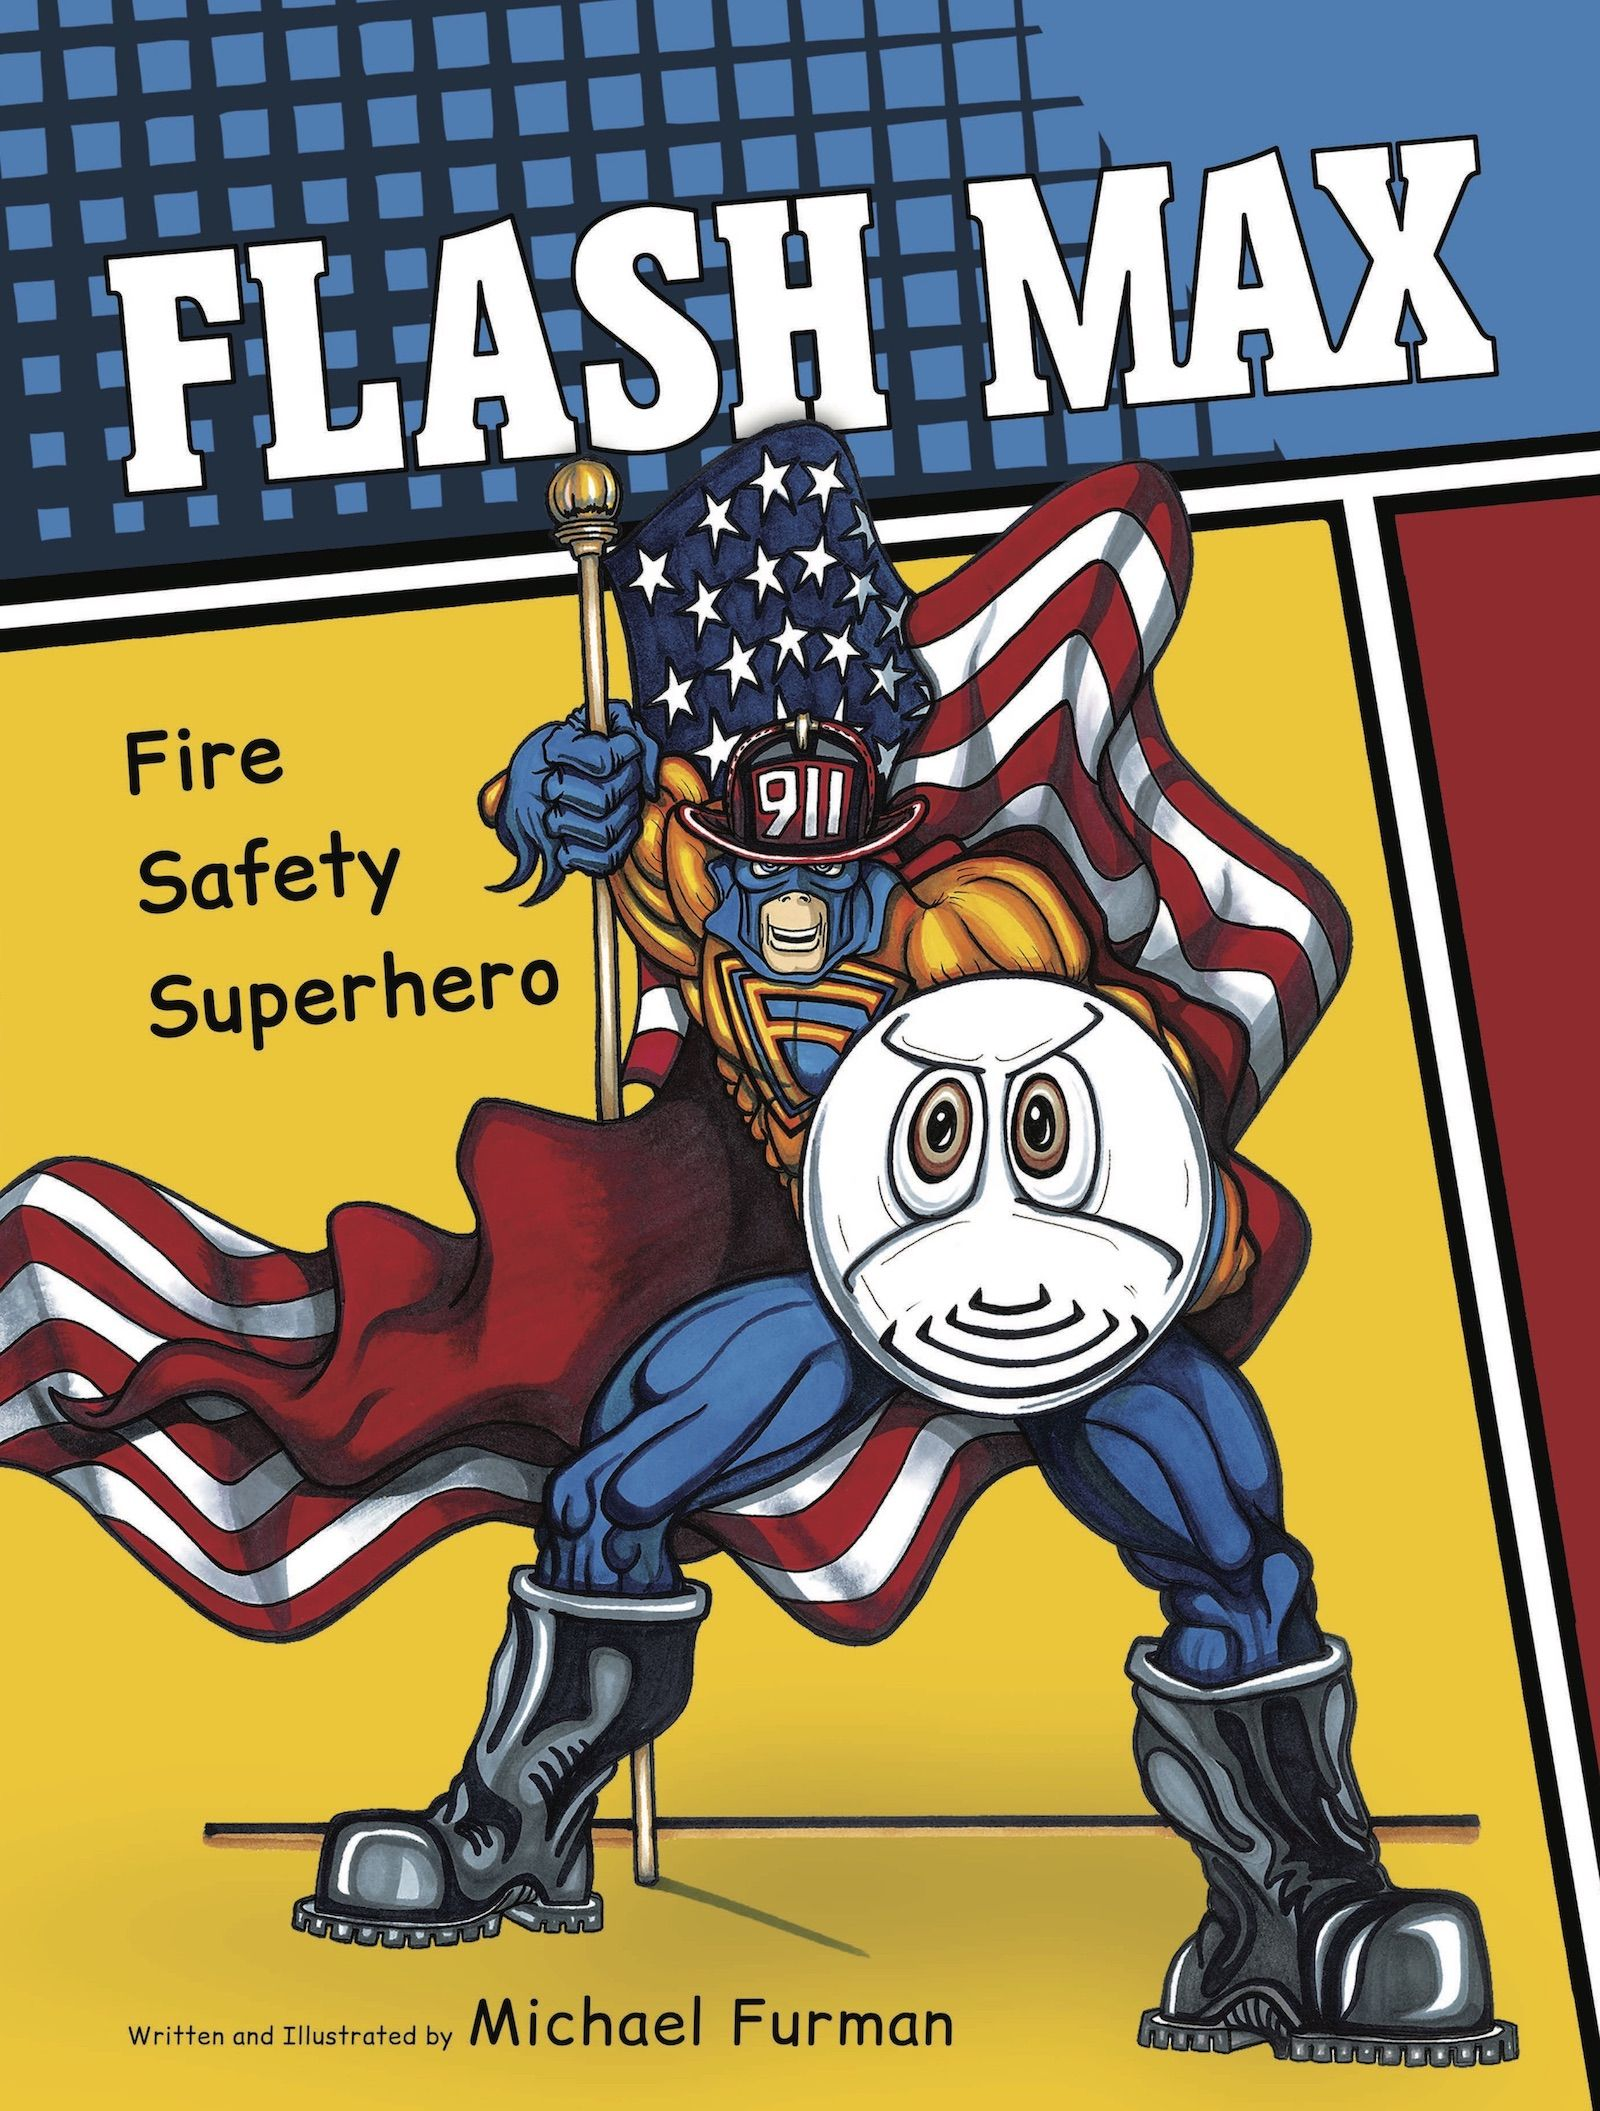 Pin by Valerie Pfundstein on Flash Max Fire Safety